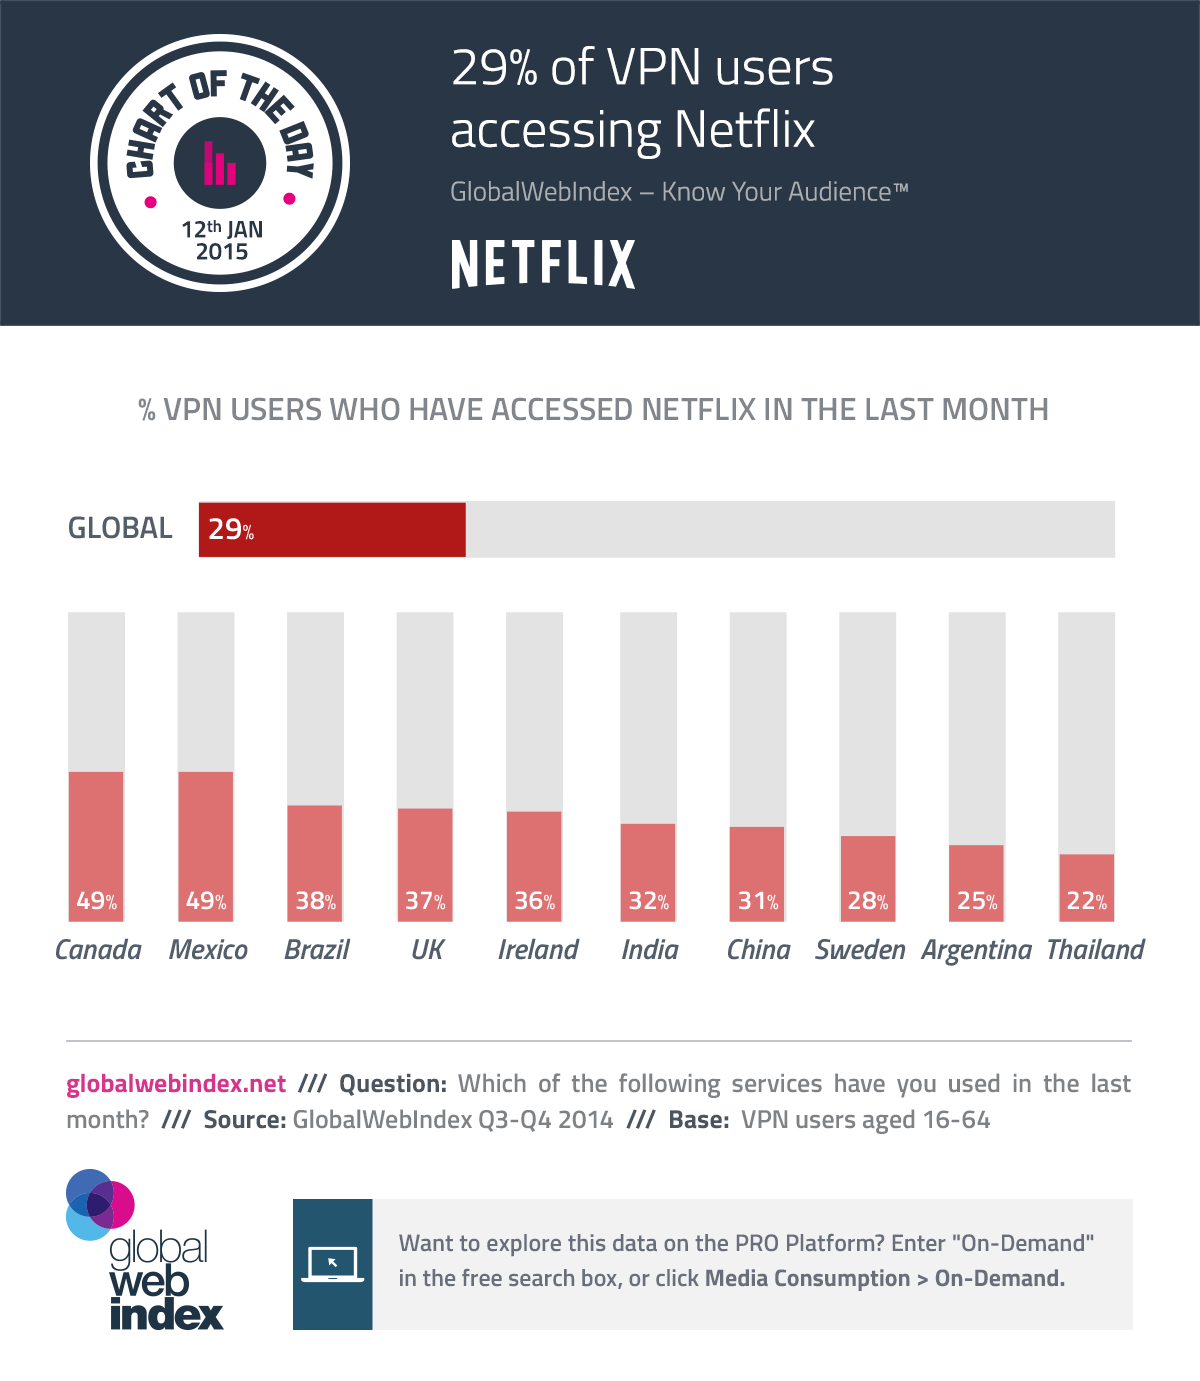 12th-Jan-2015-29-of-VPN-users-accessing-Netflix